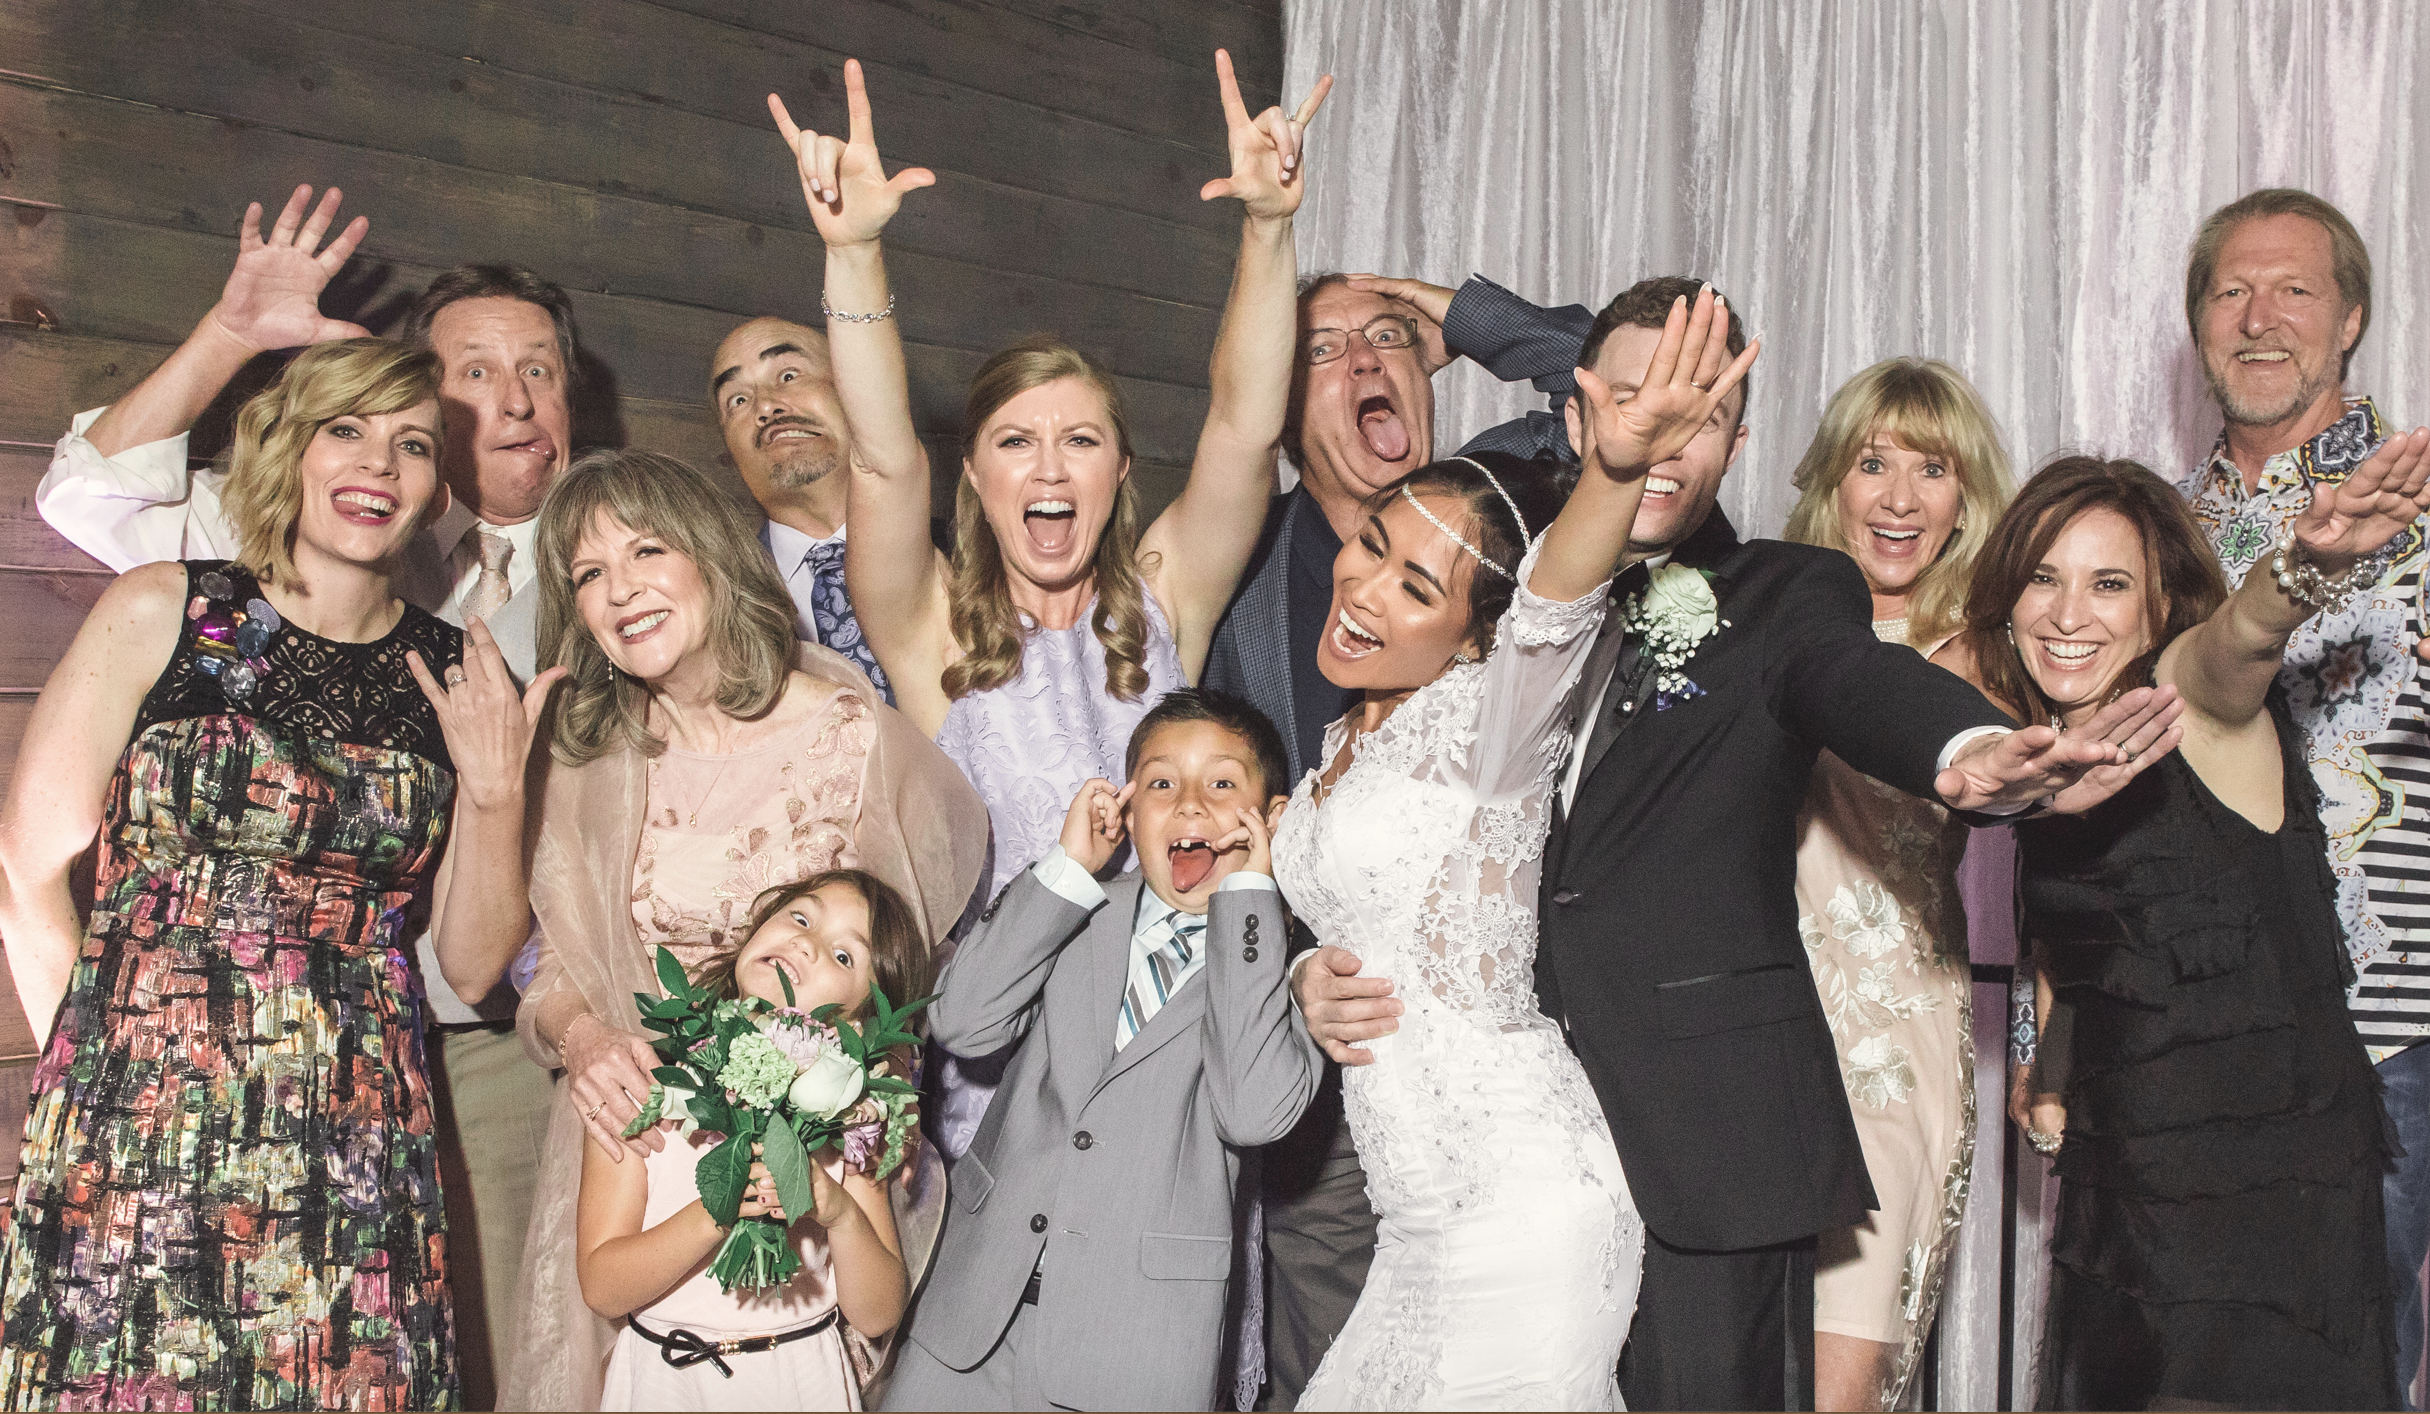 """""""Thank you, VegasETC, for keeping the party going all night!""""  - Anna (bride)"""